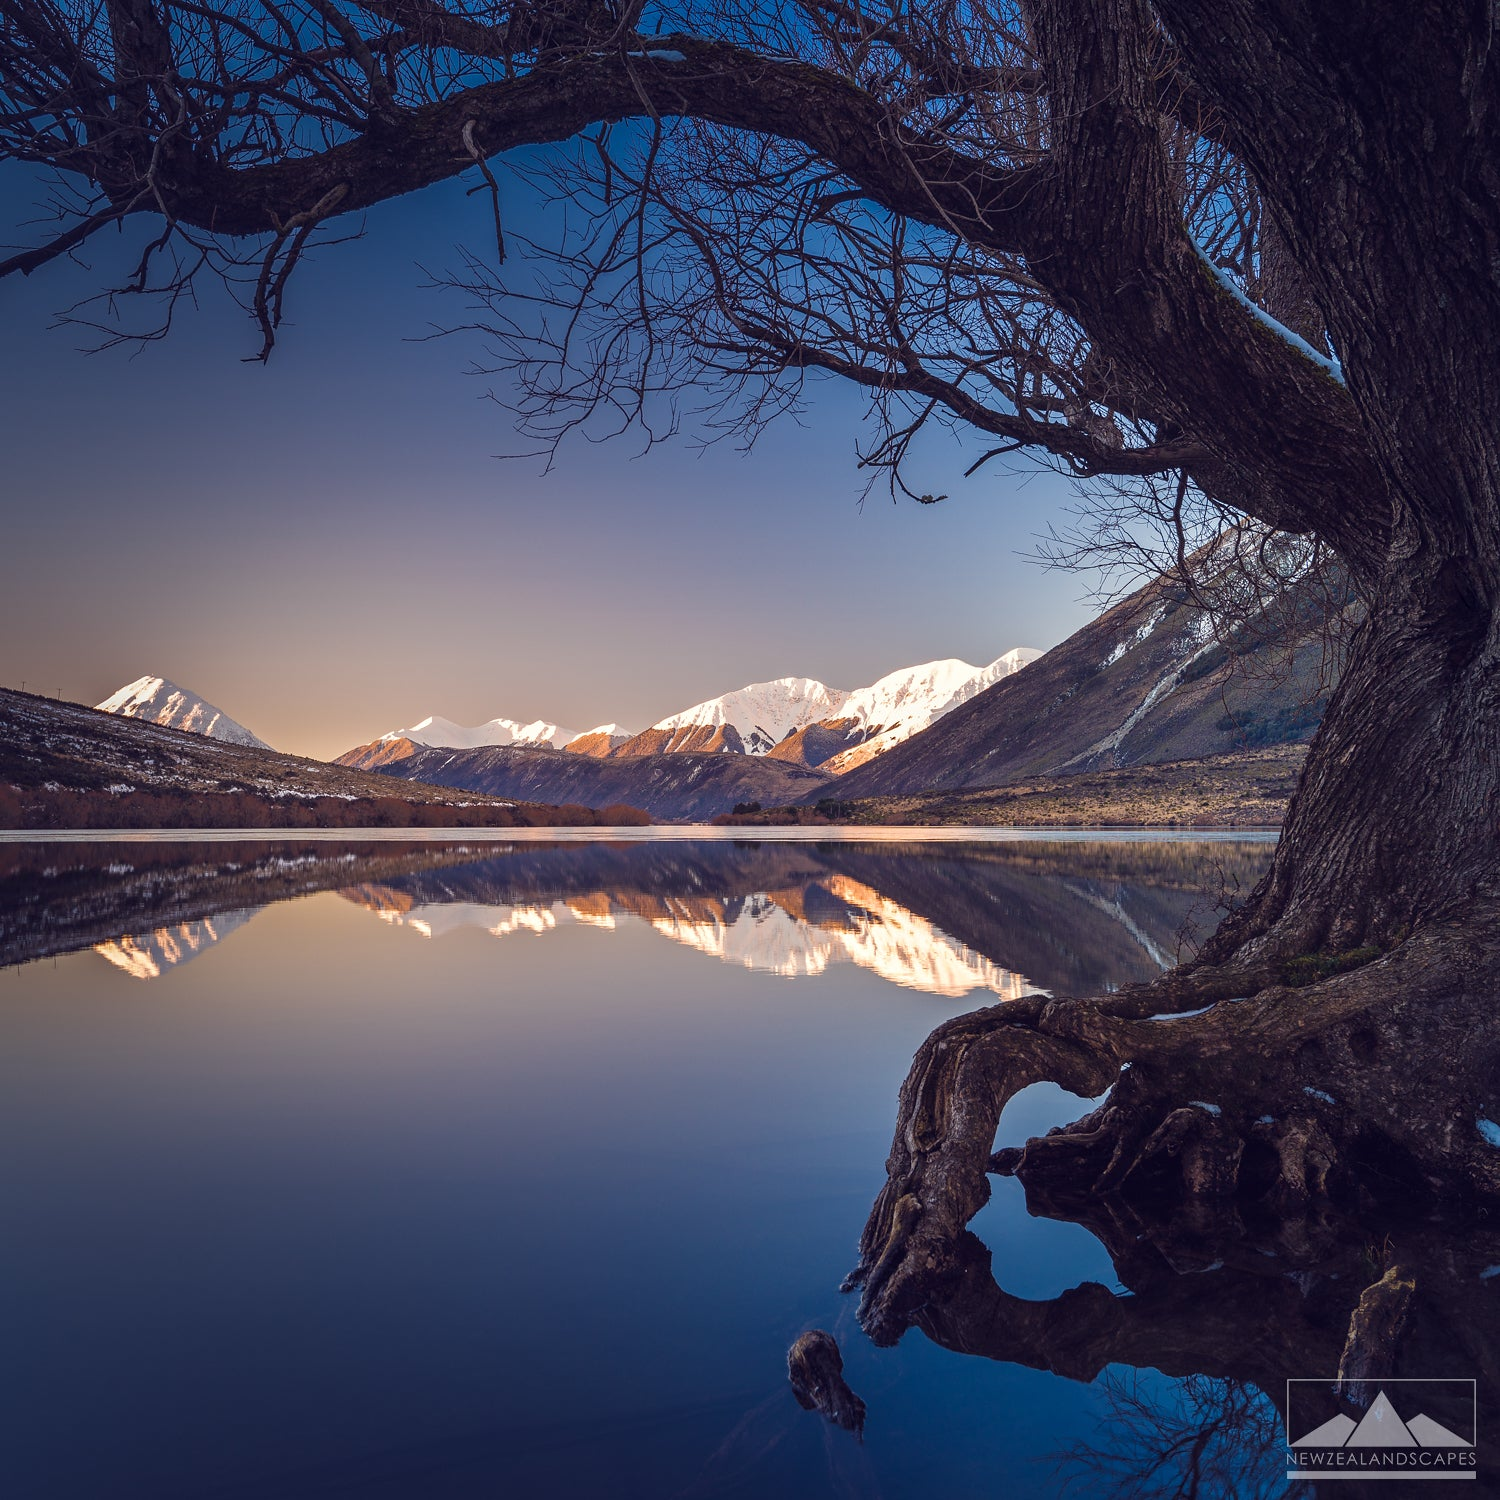 stunning reflection at lake pearson with snow capped mountains